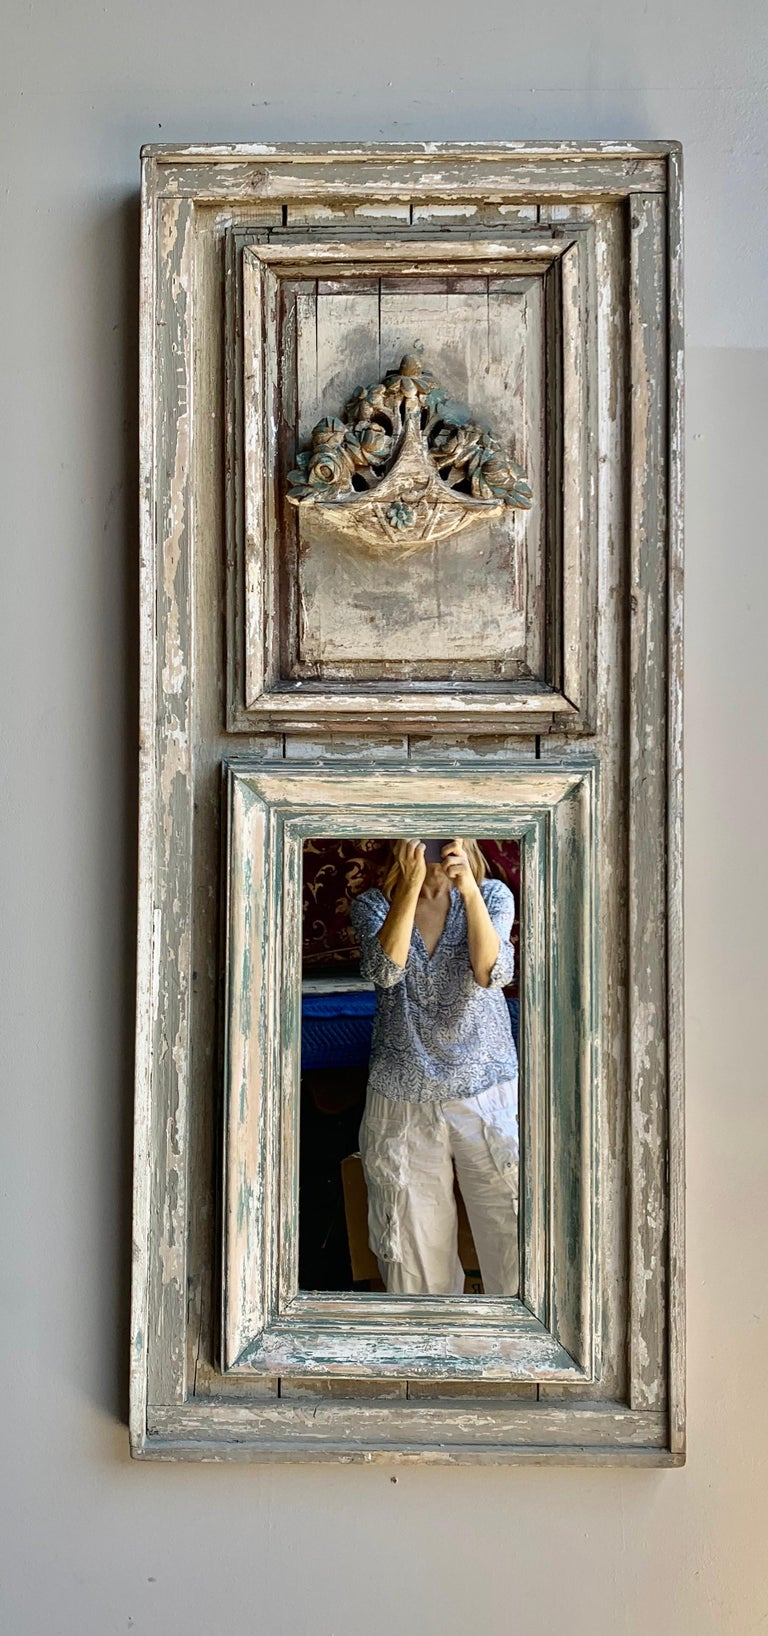 Early 20th century carved wood painted trumeau with a center carved basquet of flowers at the top of the mirror. Beautiful worn paint throughout. Great scale for smaller entry or powder room.